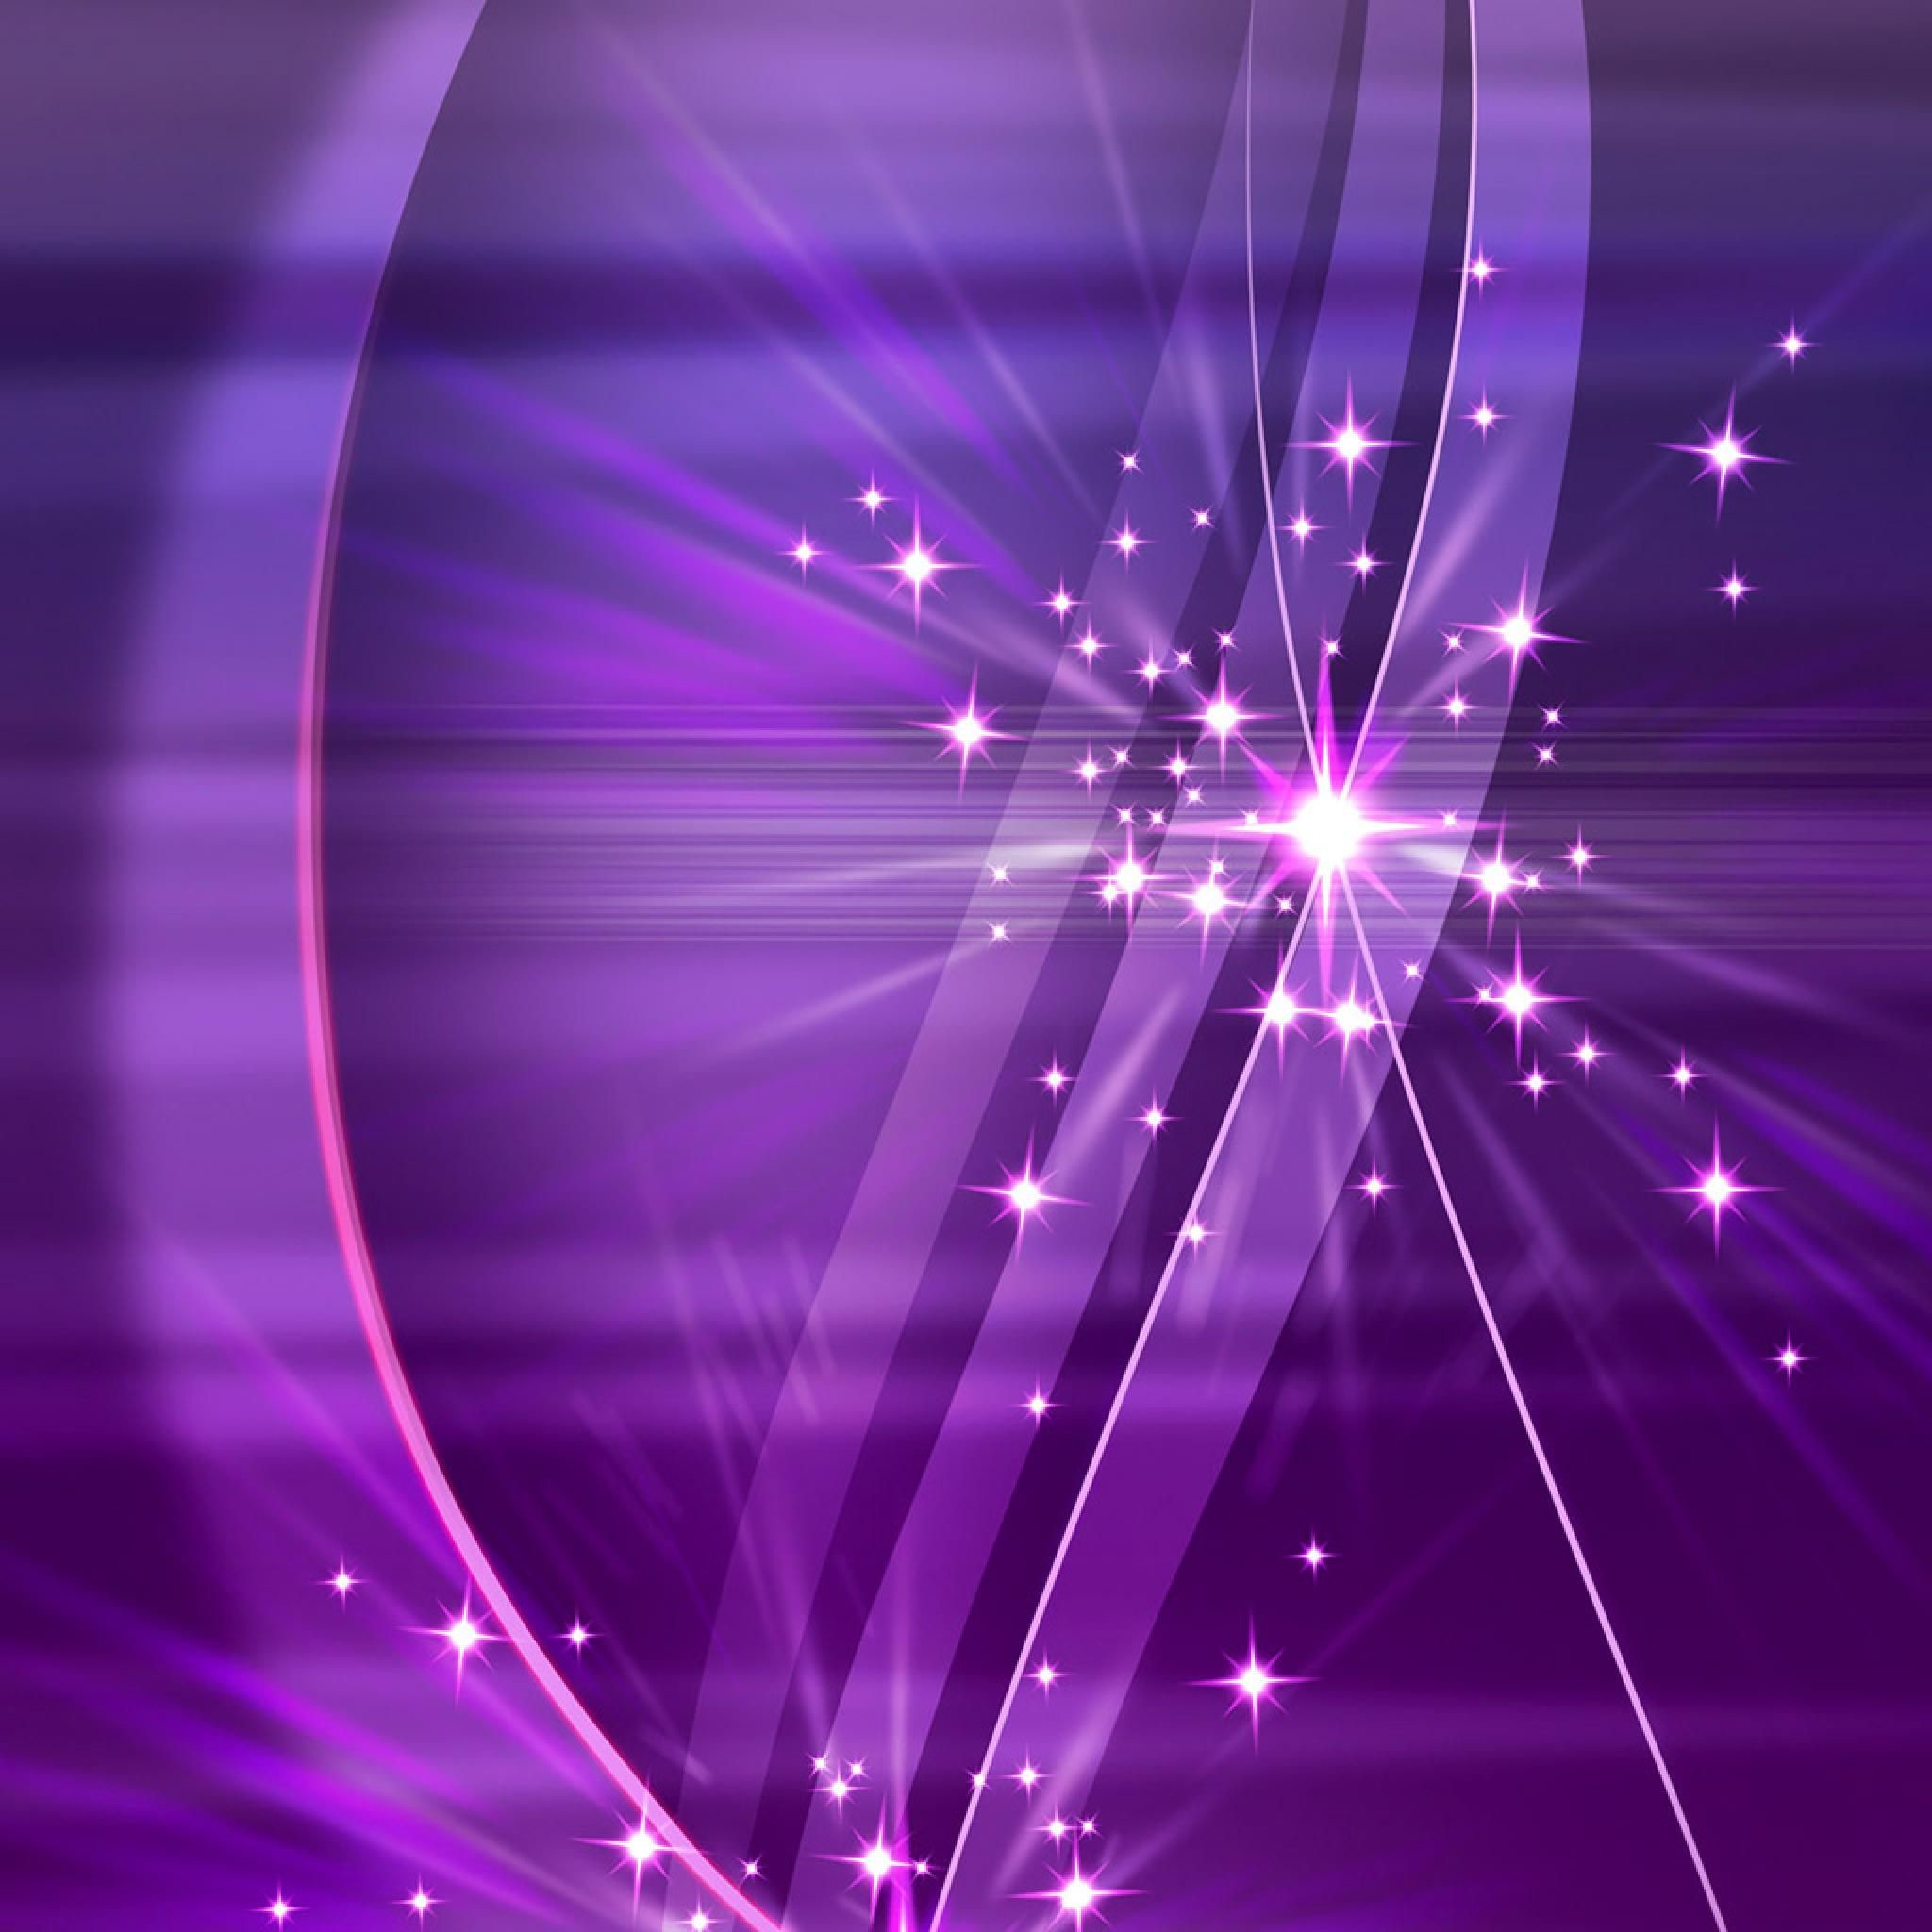 Res: 2048x2048, Abstract HD Simply Violet Sparks 3D Wallpapers Wallpaper for iPad